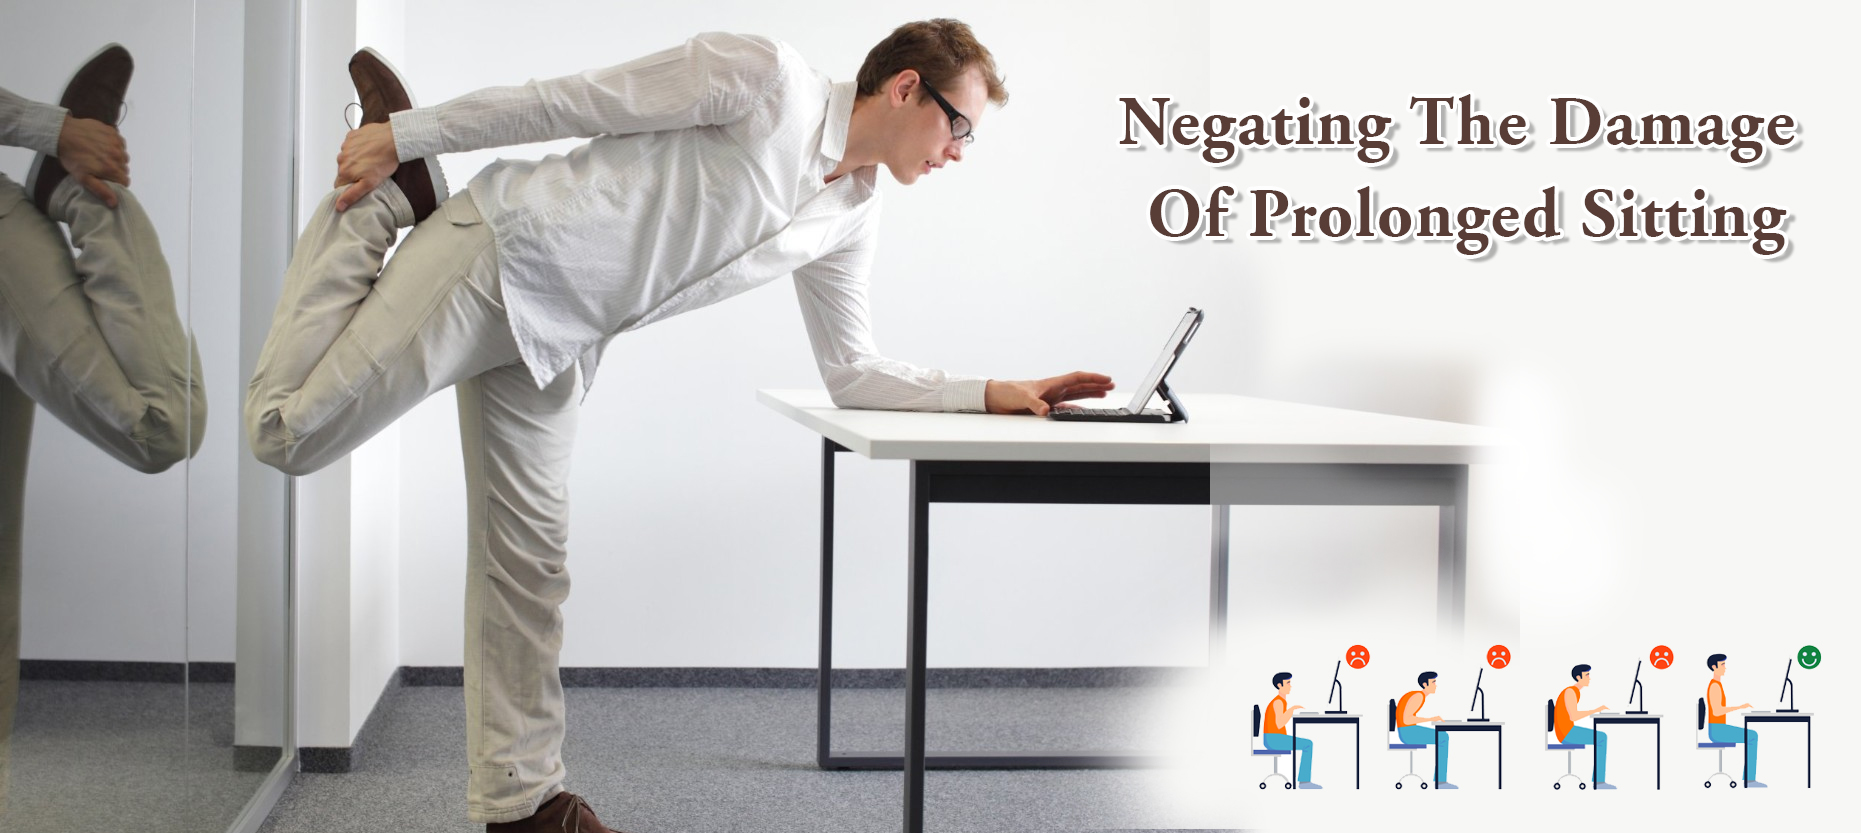 8 Easy Ways To Negate Ill-Effects Of Prolonged Sitting